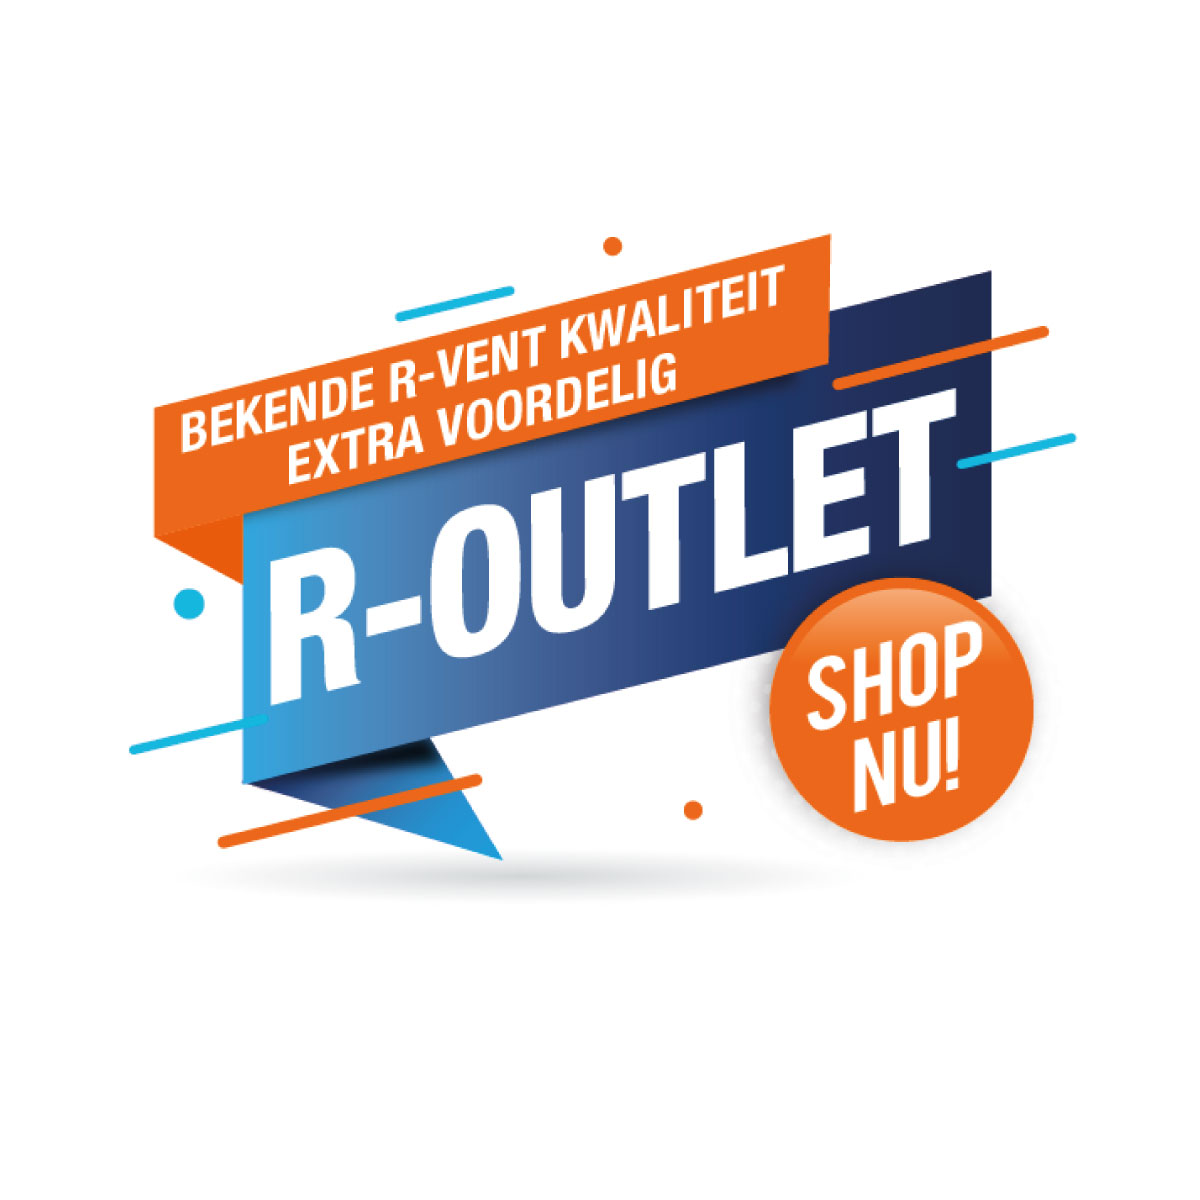 R-Outlet